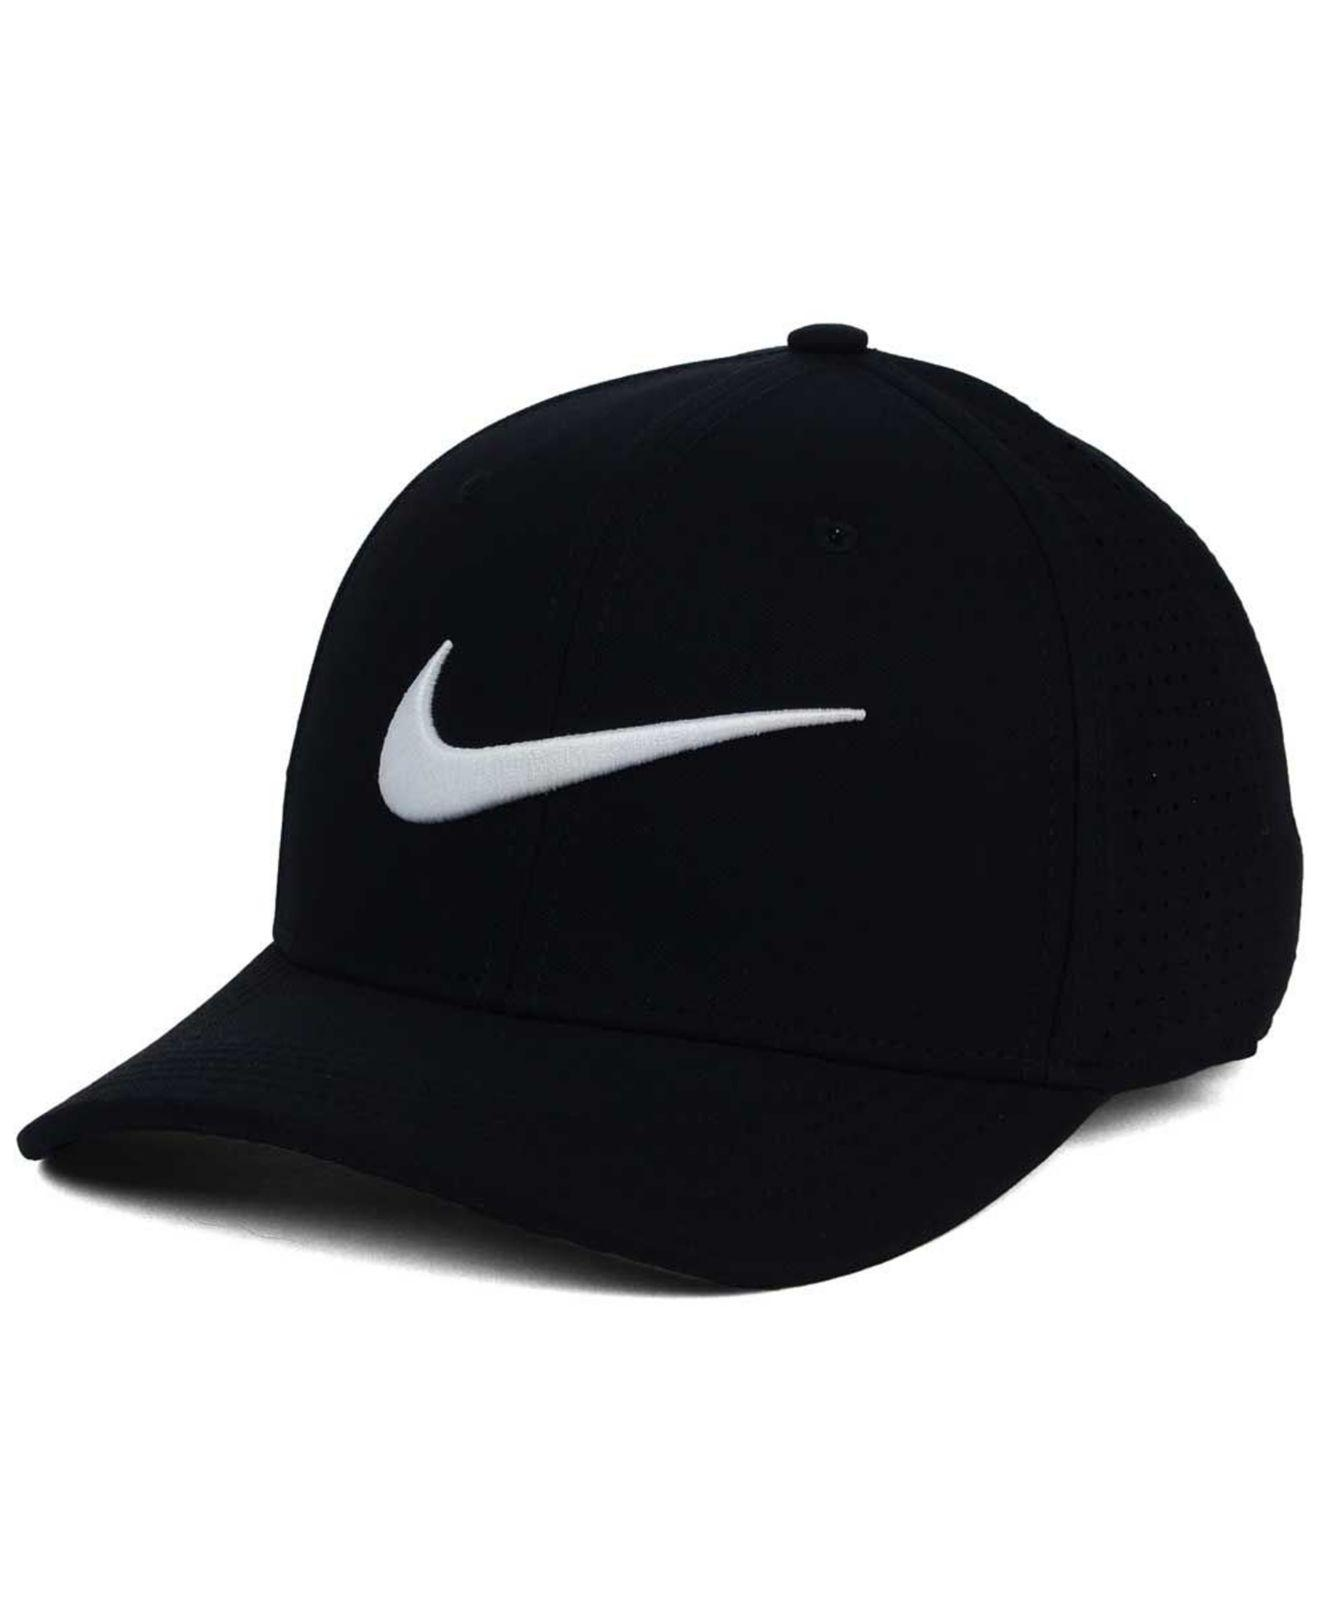 info for fde09 57152 ... red 20839566 17a71 097d8 store lyst nike vapor flex ii cap in black for  men fcabf c9b0e ...